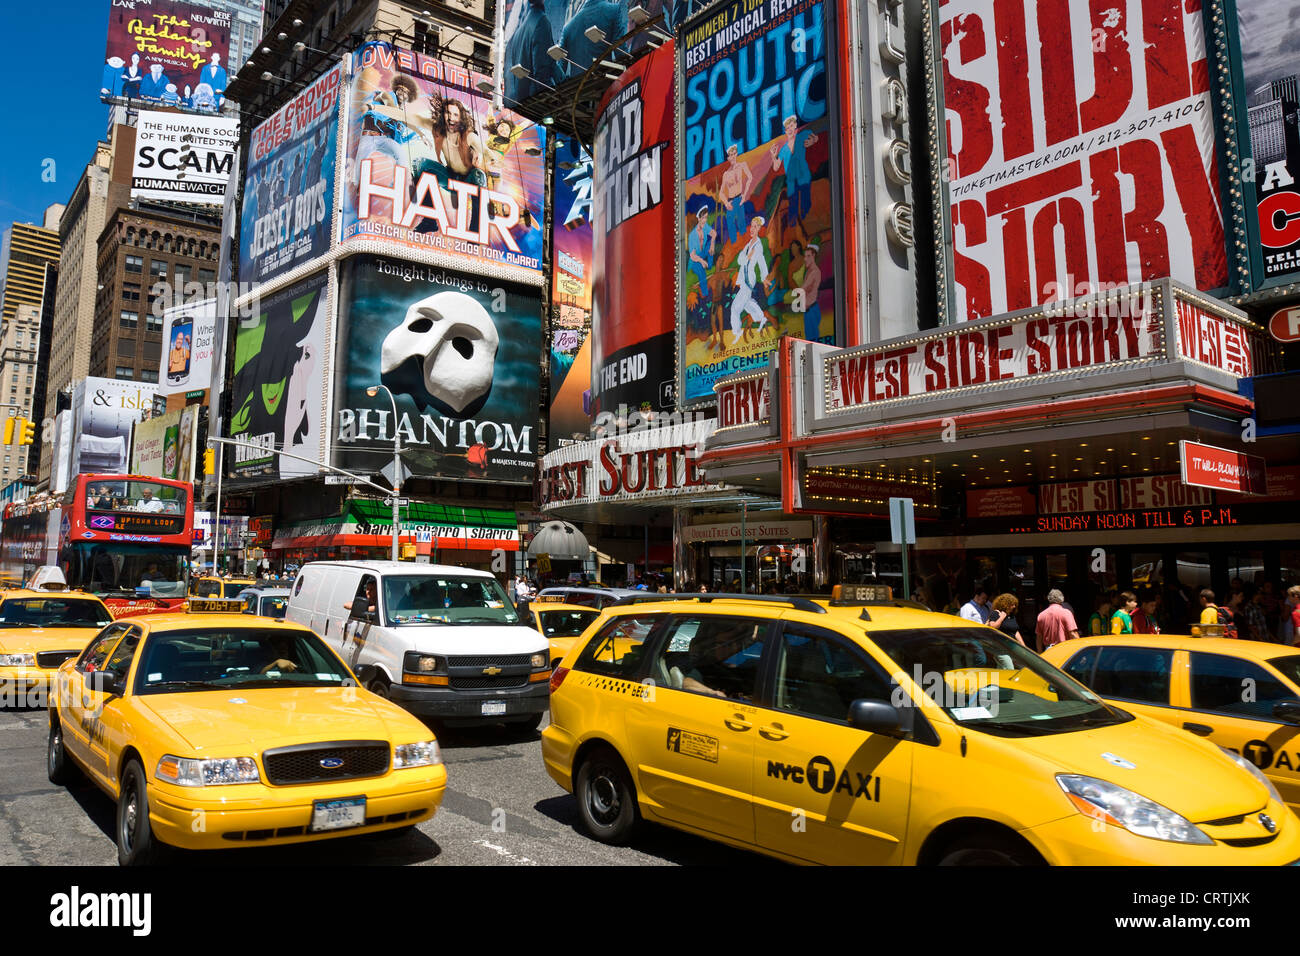 New York Times Square Yellow Taxi, New York City Daytime Broadway Theater Billboards and Yellow Taxis - Stock Image